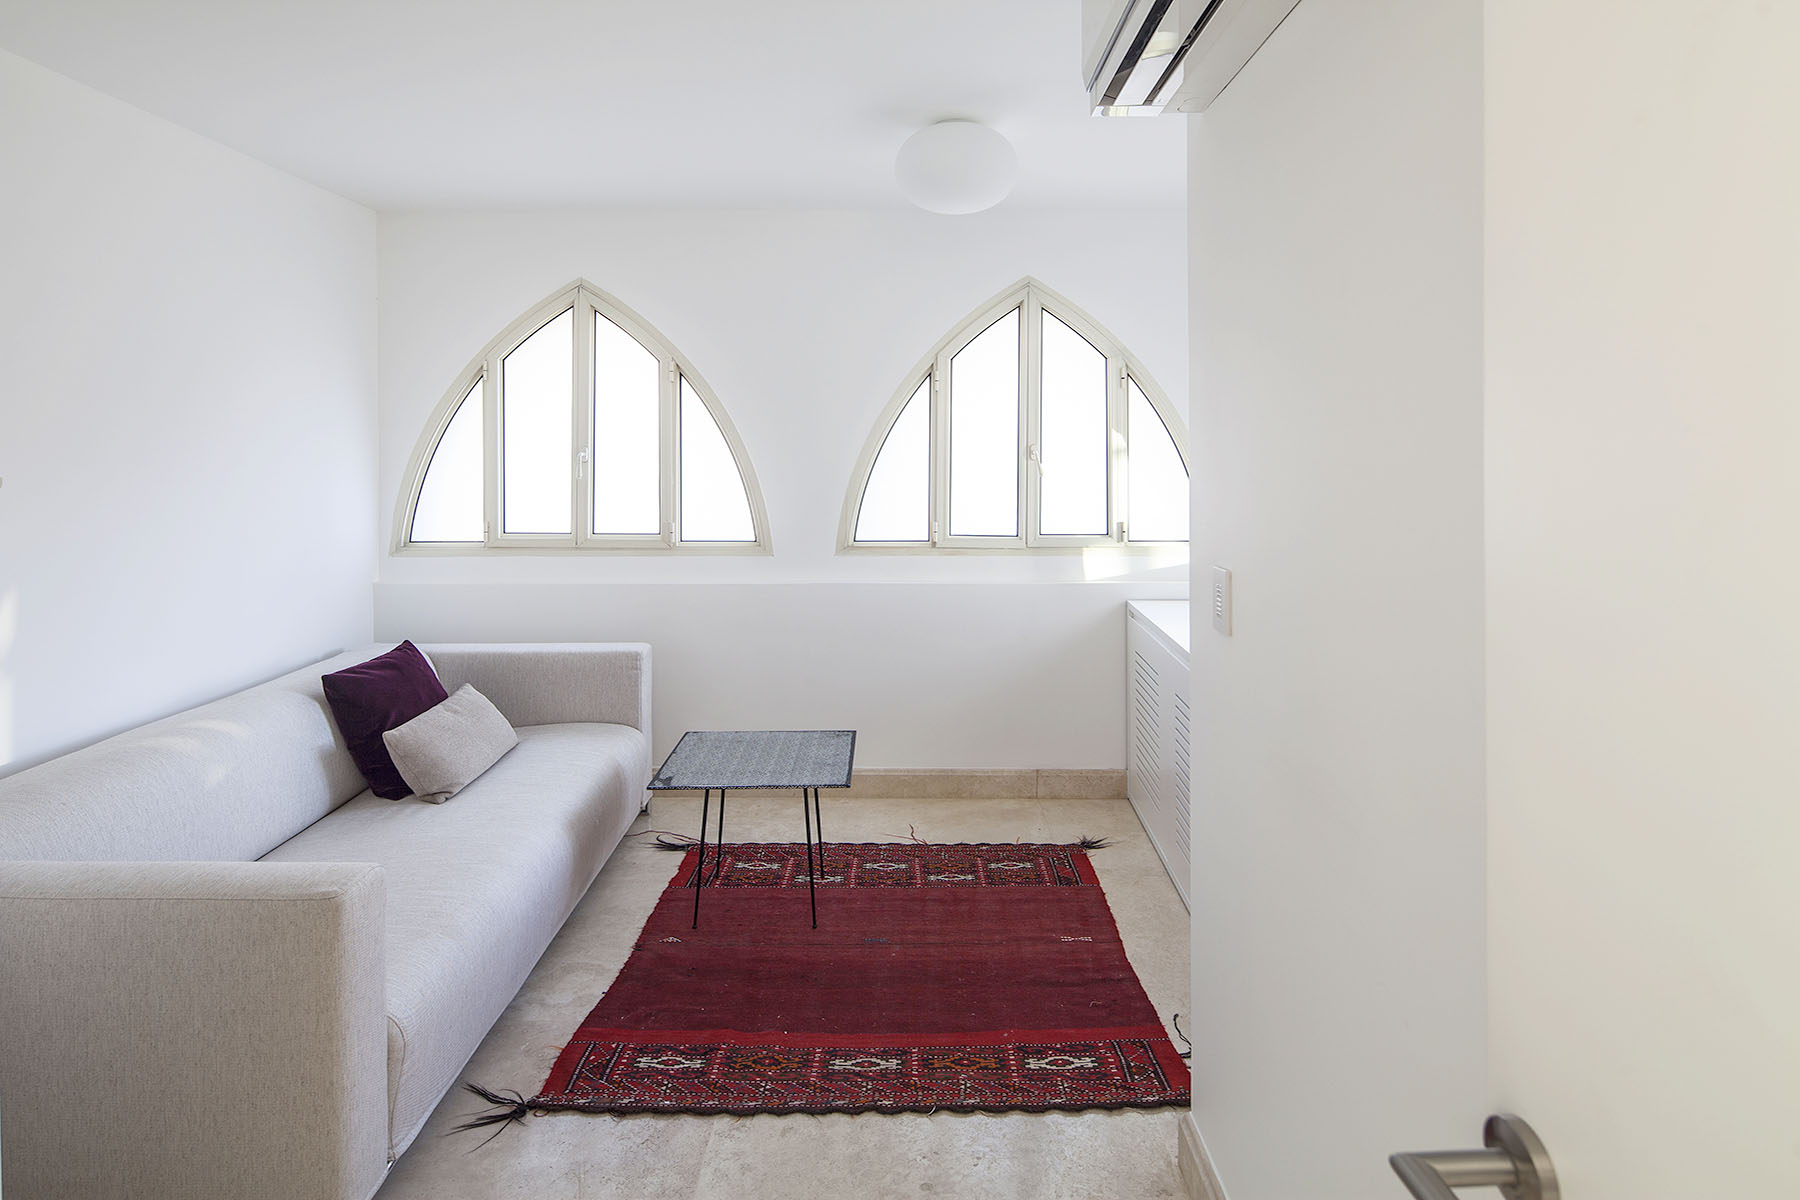 Additional photo for property listing at One of a Kind Historical Triplex Apartment in Jaffa Jaffa, Israel Israel